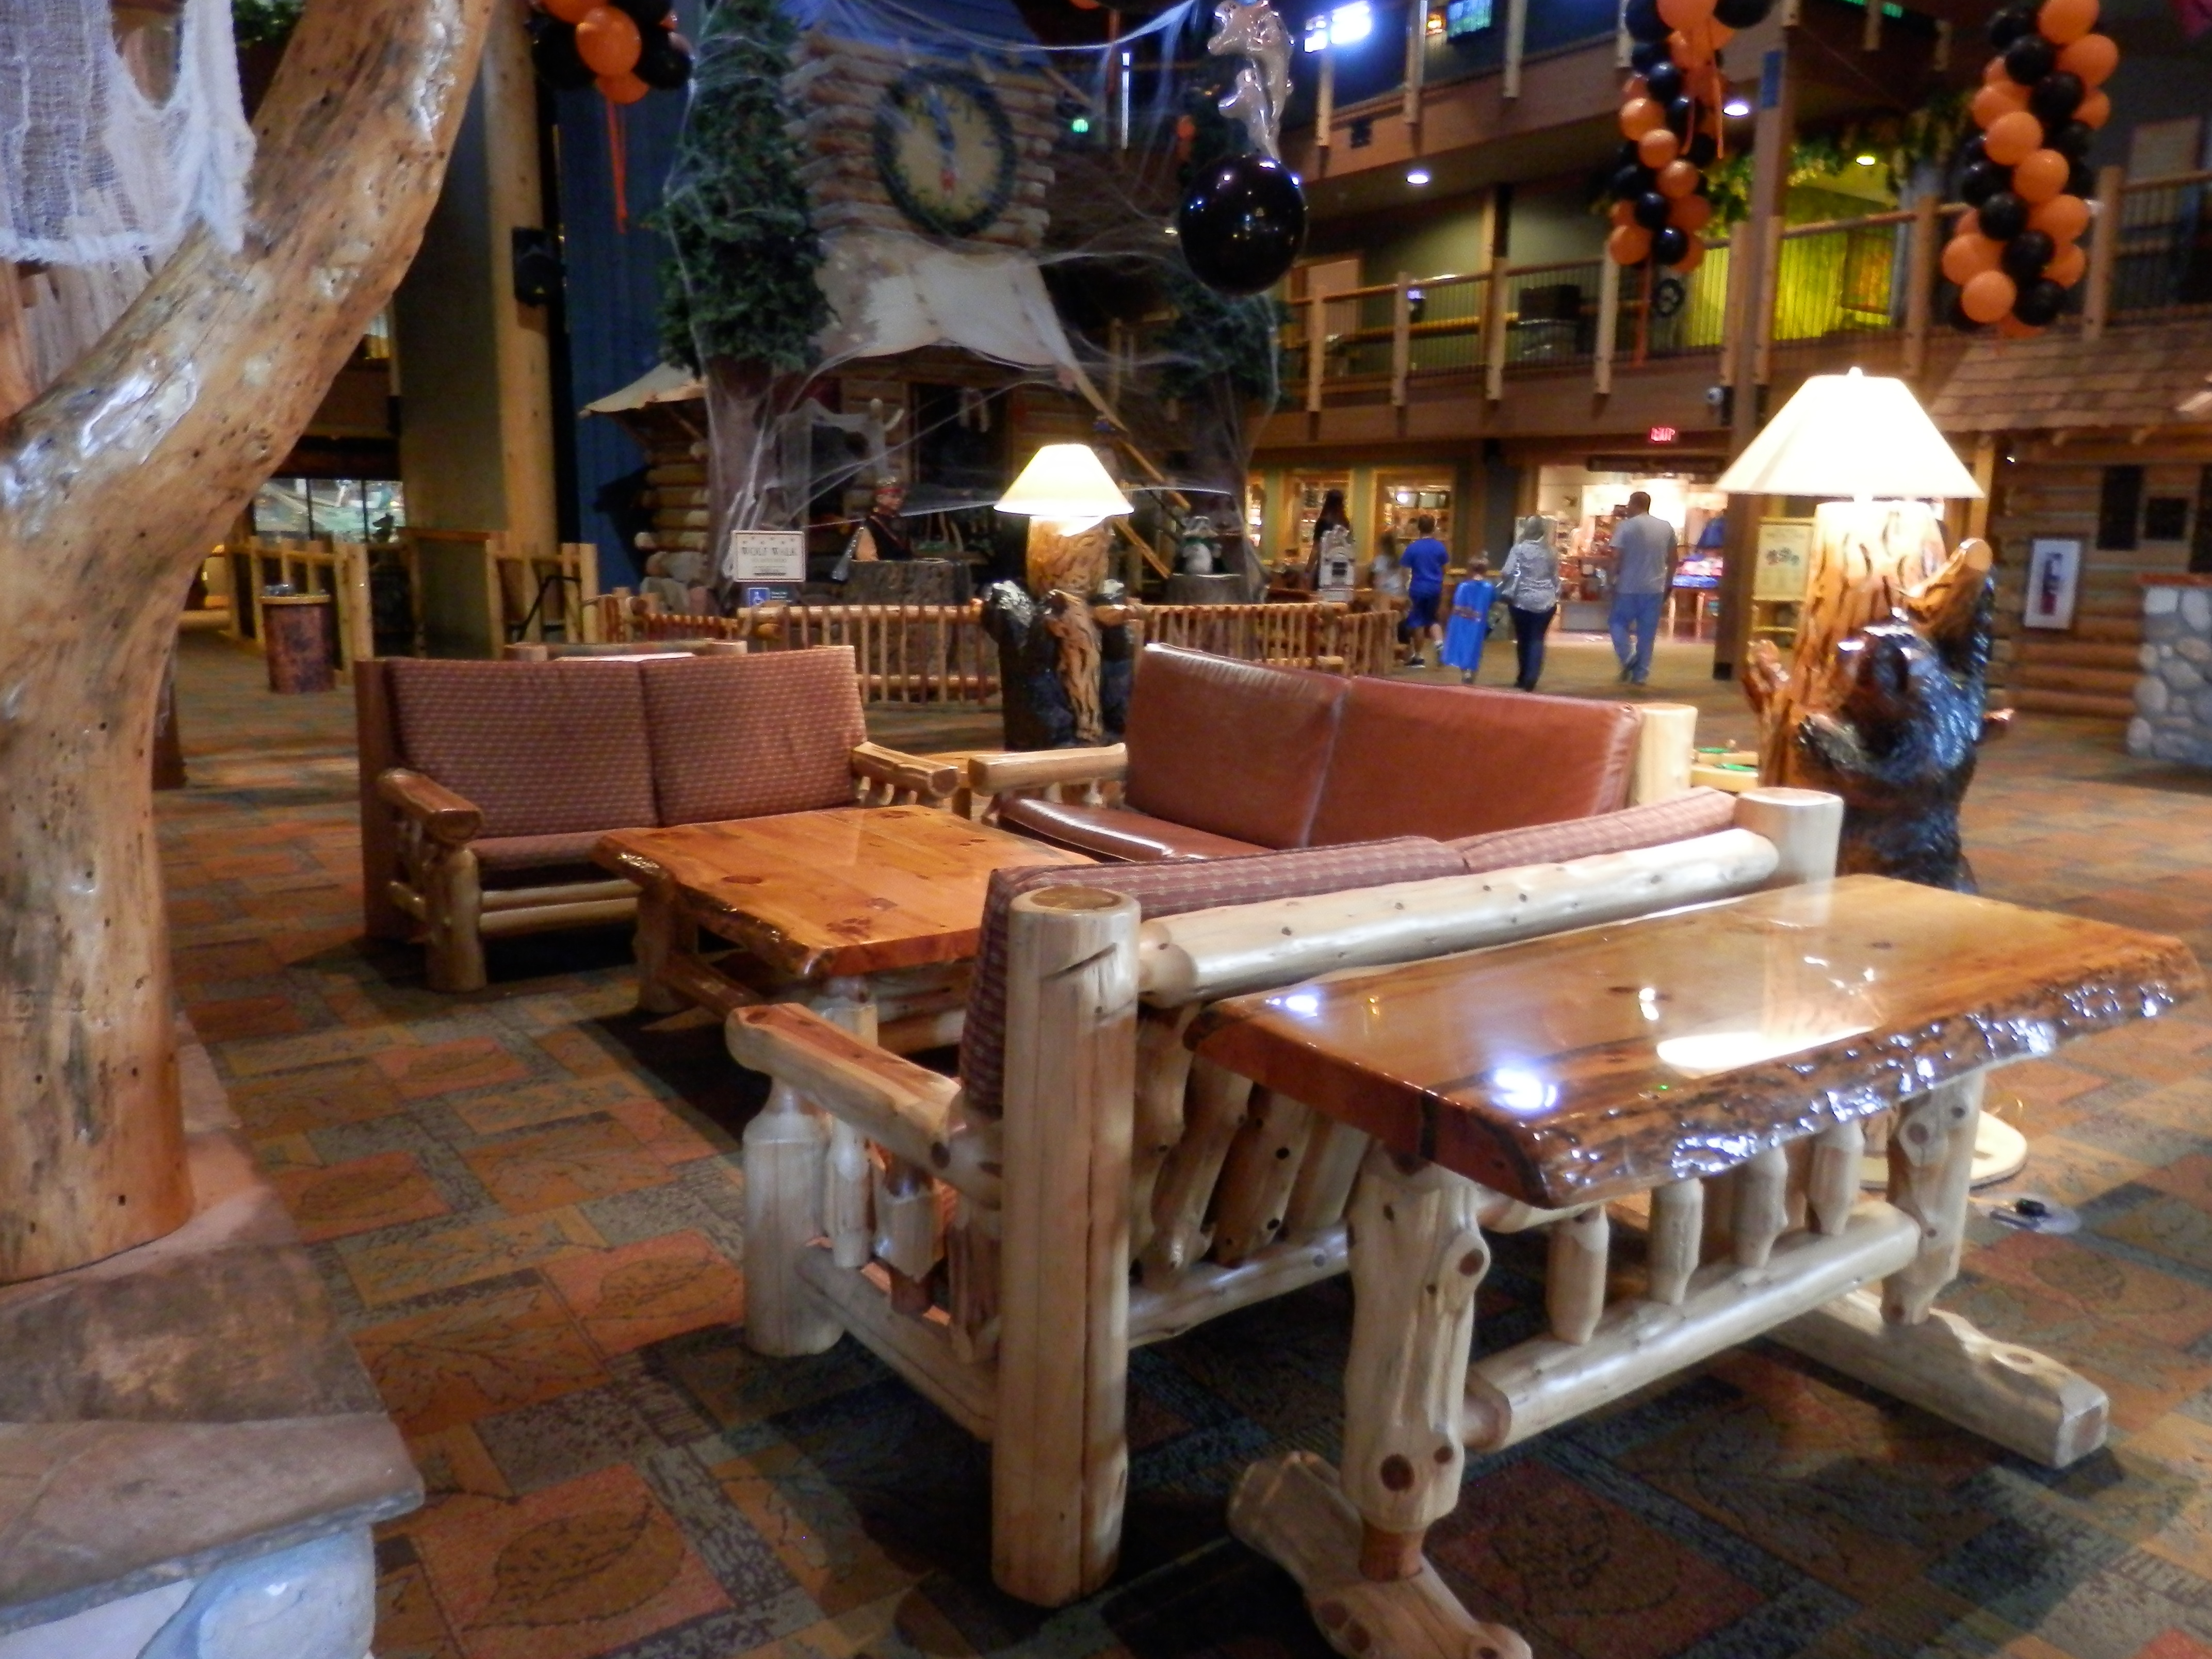 Adjacent to Great Wolf Lodge is MagiQuest, a four-story live action adventure game with players using magic wands - score! After you've worked up an appetite, take the team to one of the two Monk's Bar & Grill restaurants in Wisconsin Dells for a classic burger the locals love.